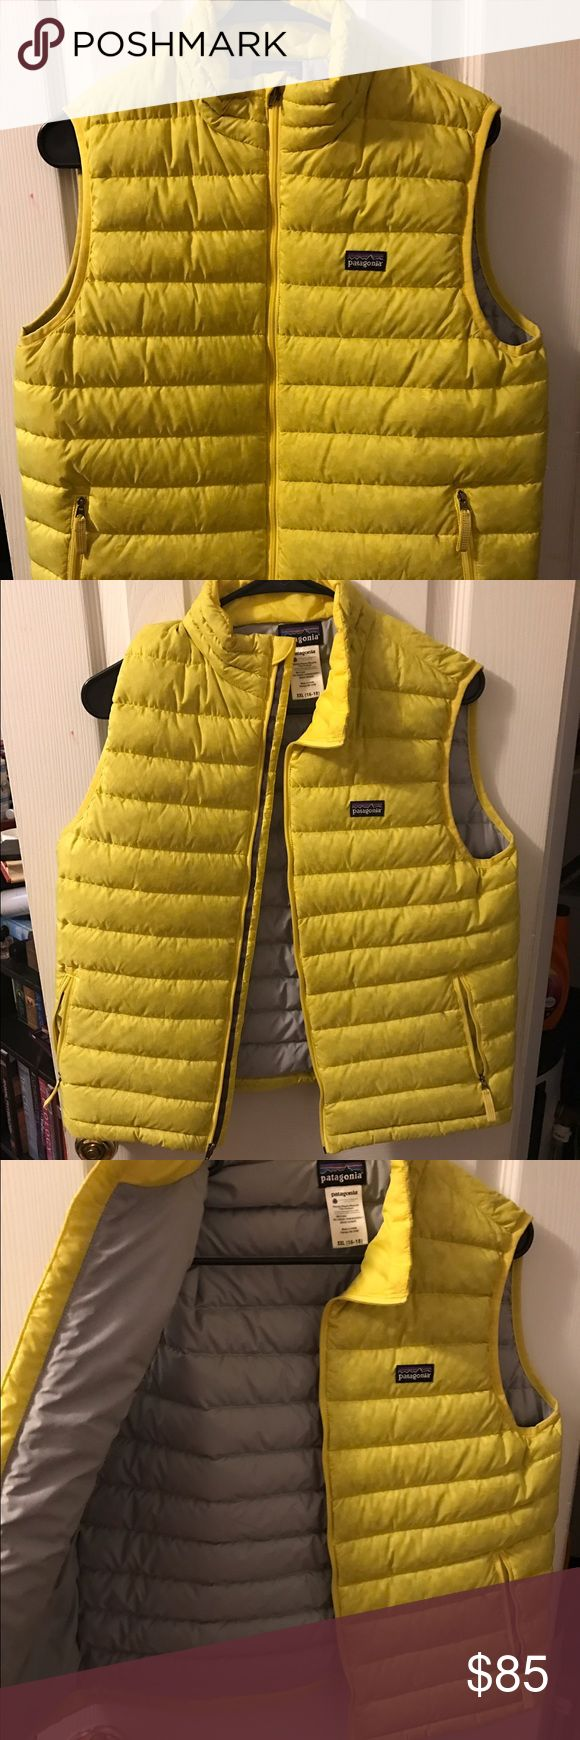 Patagonia down sweater vest in bright yellow Patagonia down filled bright yellow vest- never get lost in the woods. Size kids xxl, but fits great as a small to medium woman Patagonia Jackets & Coats Vests